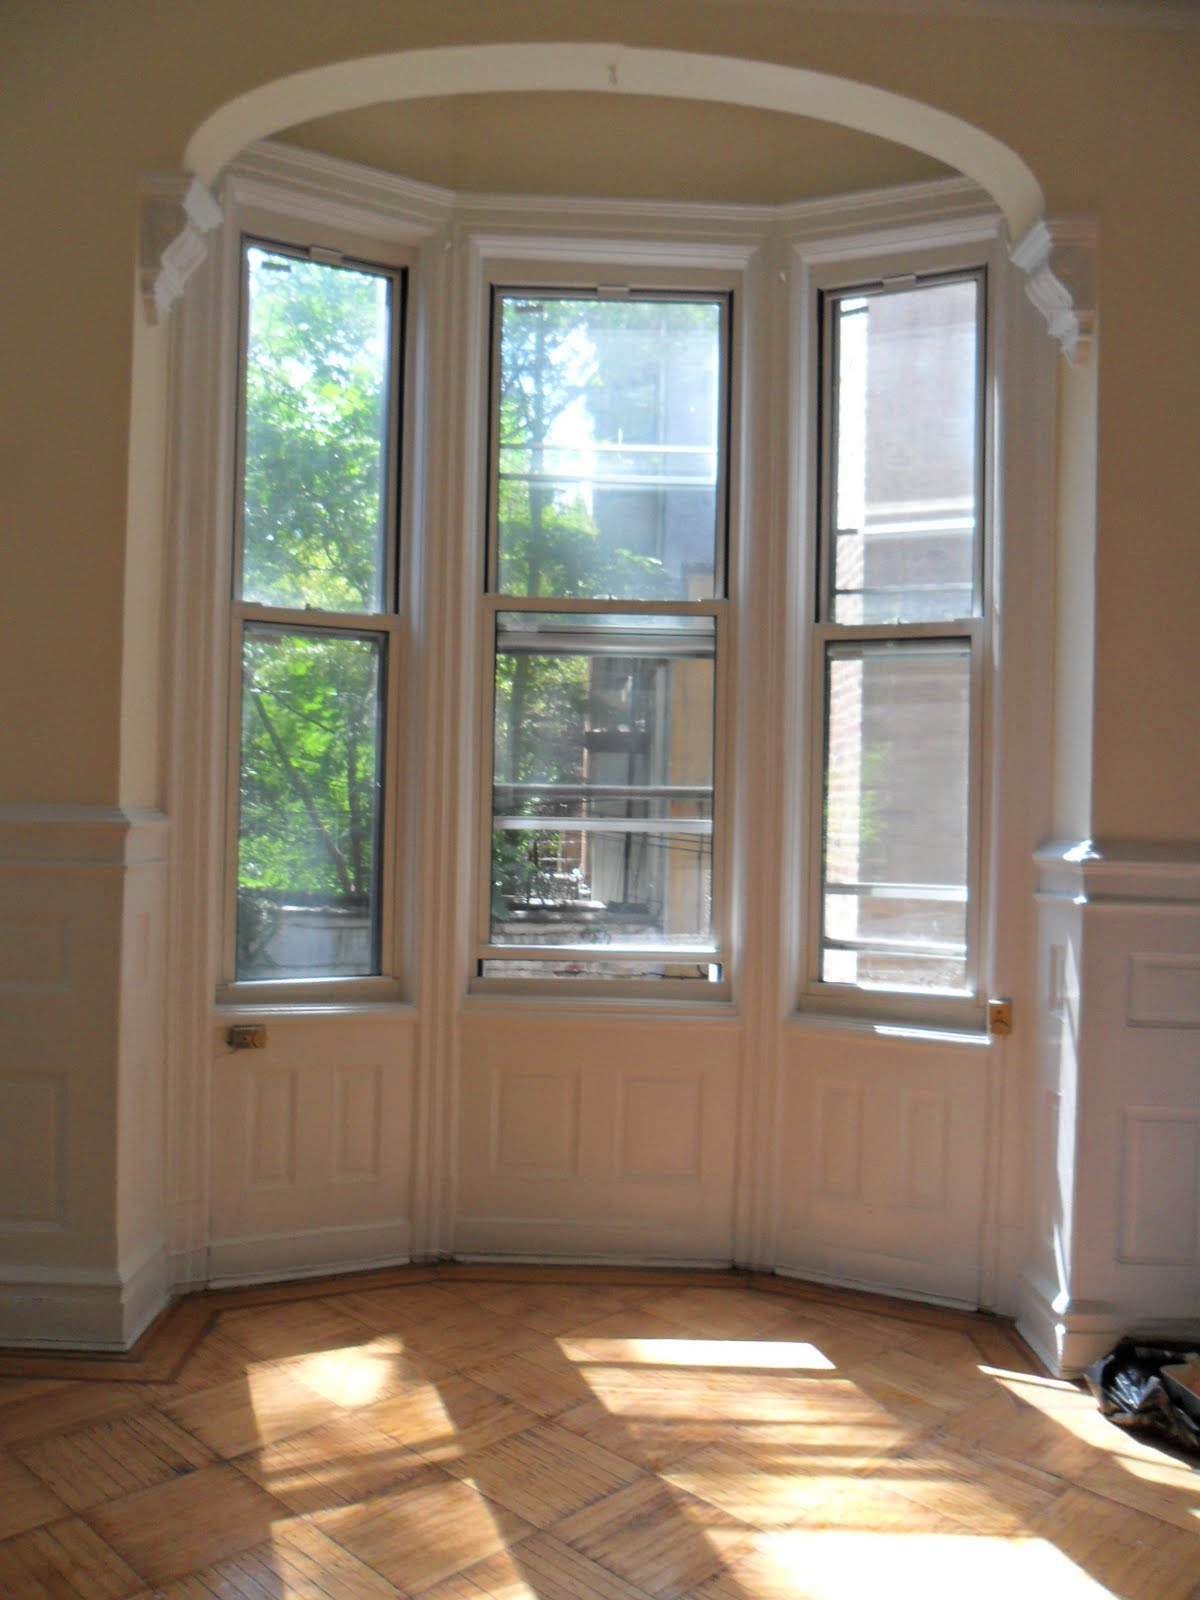 Bedroom with Bay Window